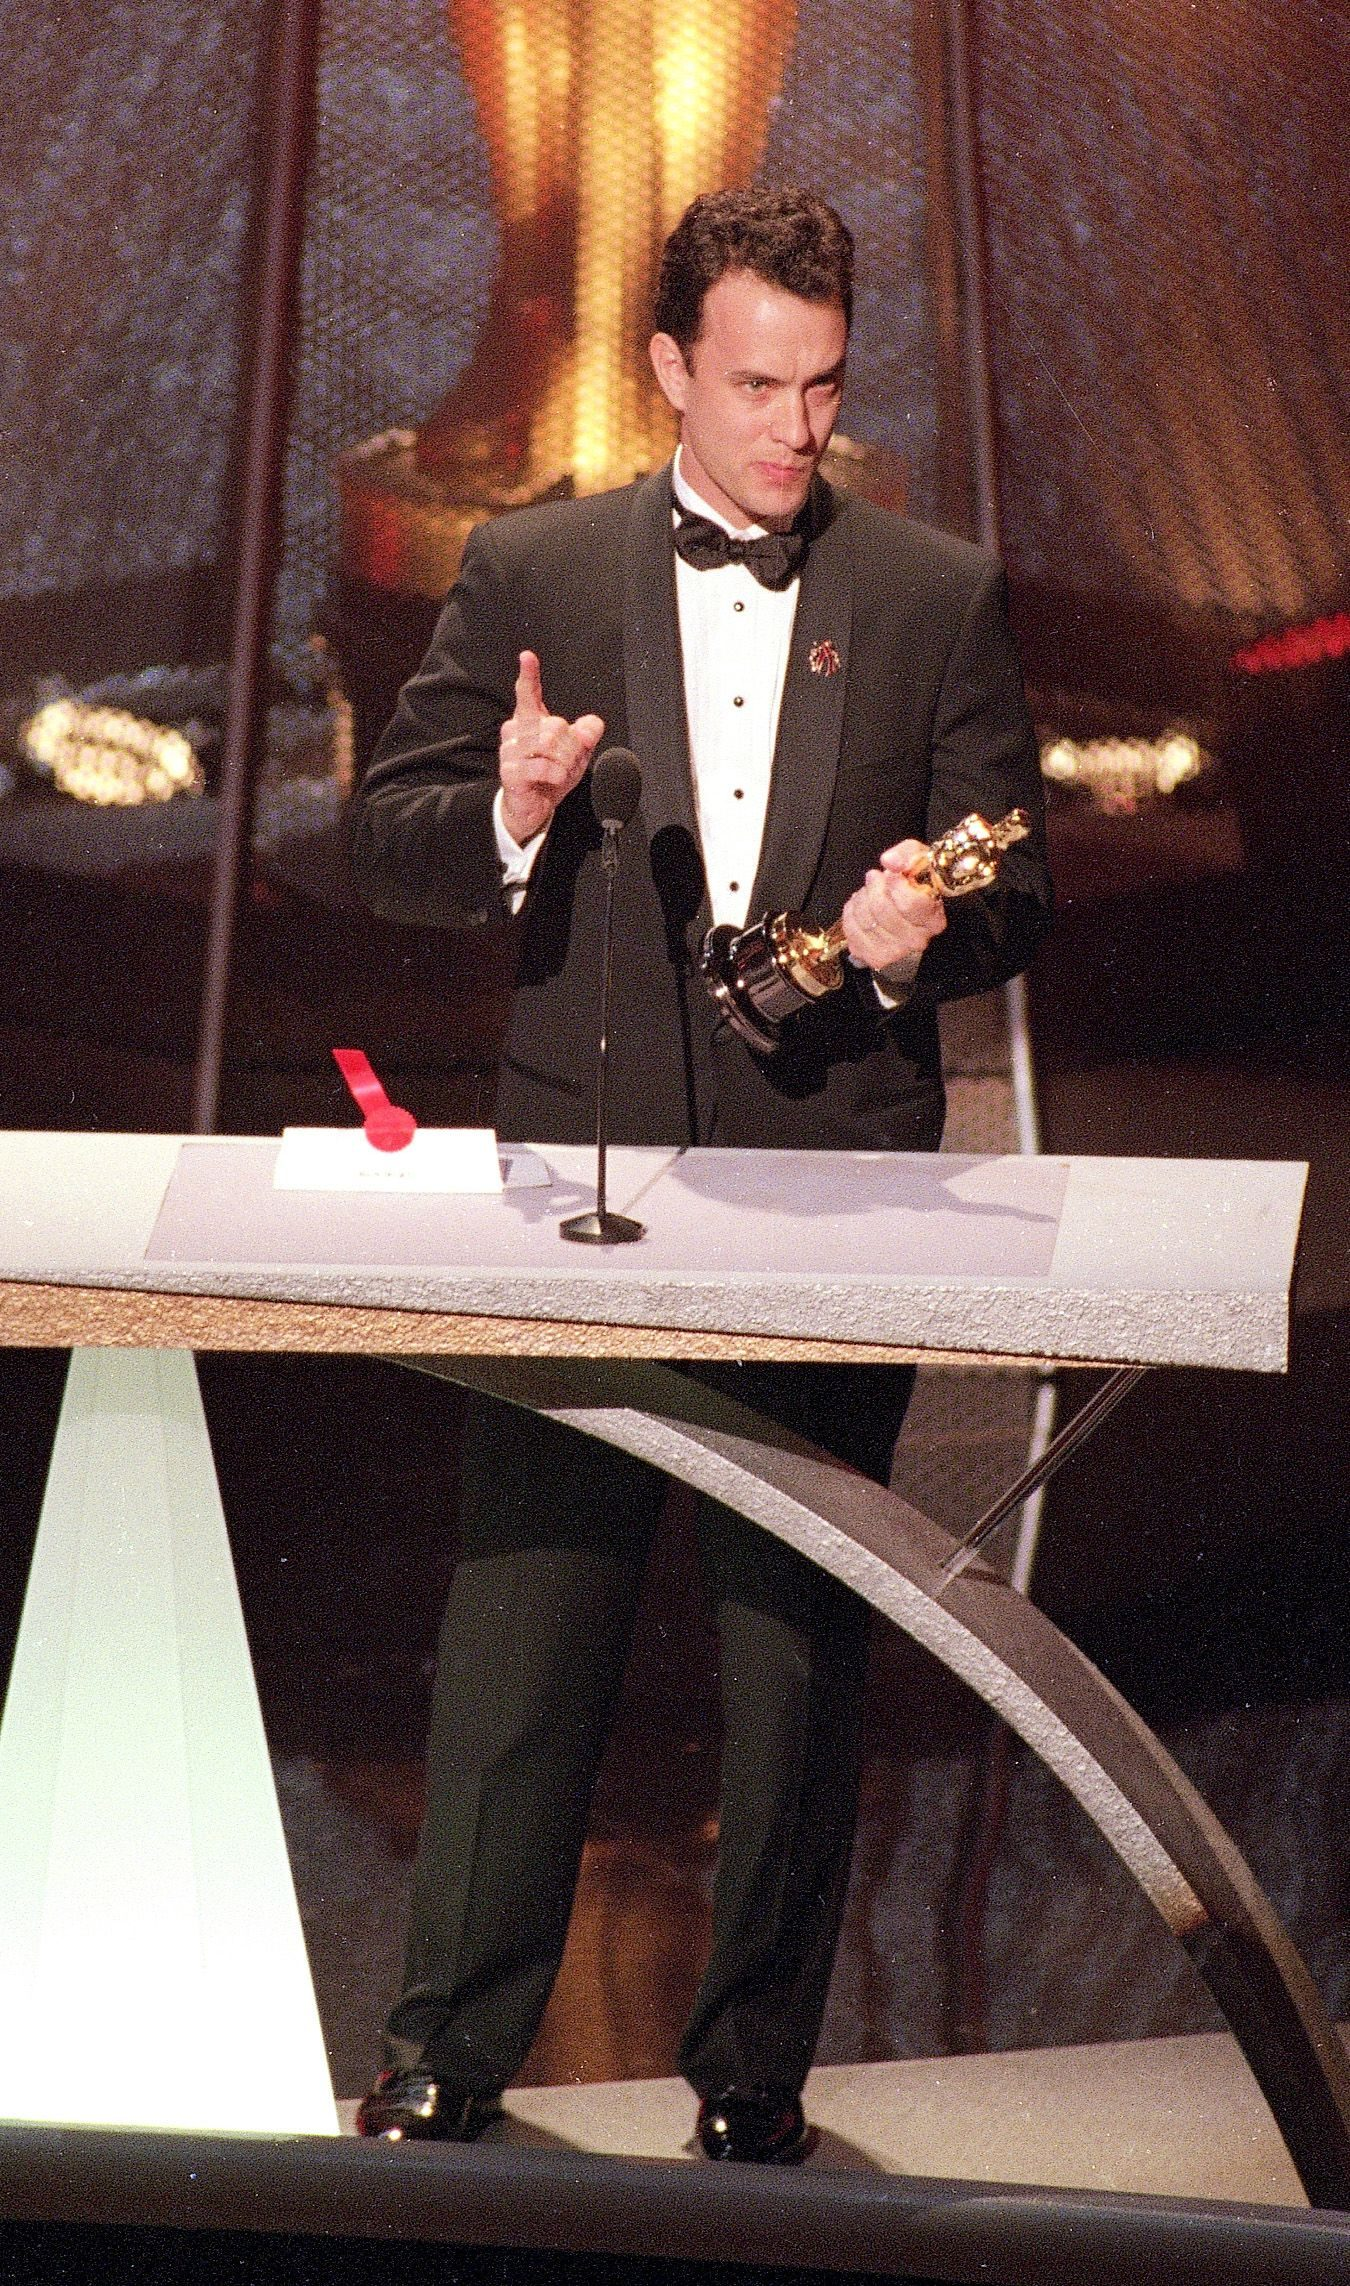 "Mandatory Credit: Photo by Reed Saxon/AP/Shutterstock (6554201a) HANKS Best Actor winner Tom Hanks gives an emotional speech at the 66th Annual Academy Awards in Los Angeles on . Hanks won for his role in the movie ""Philadelphia HANKS OSCARS, LOS ANGELES, USA"